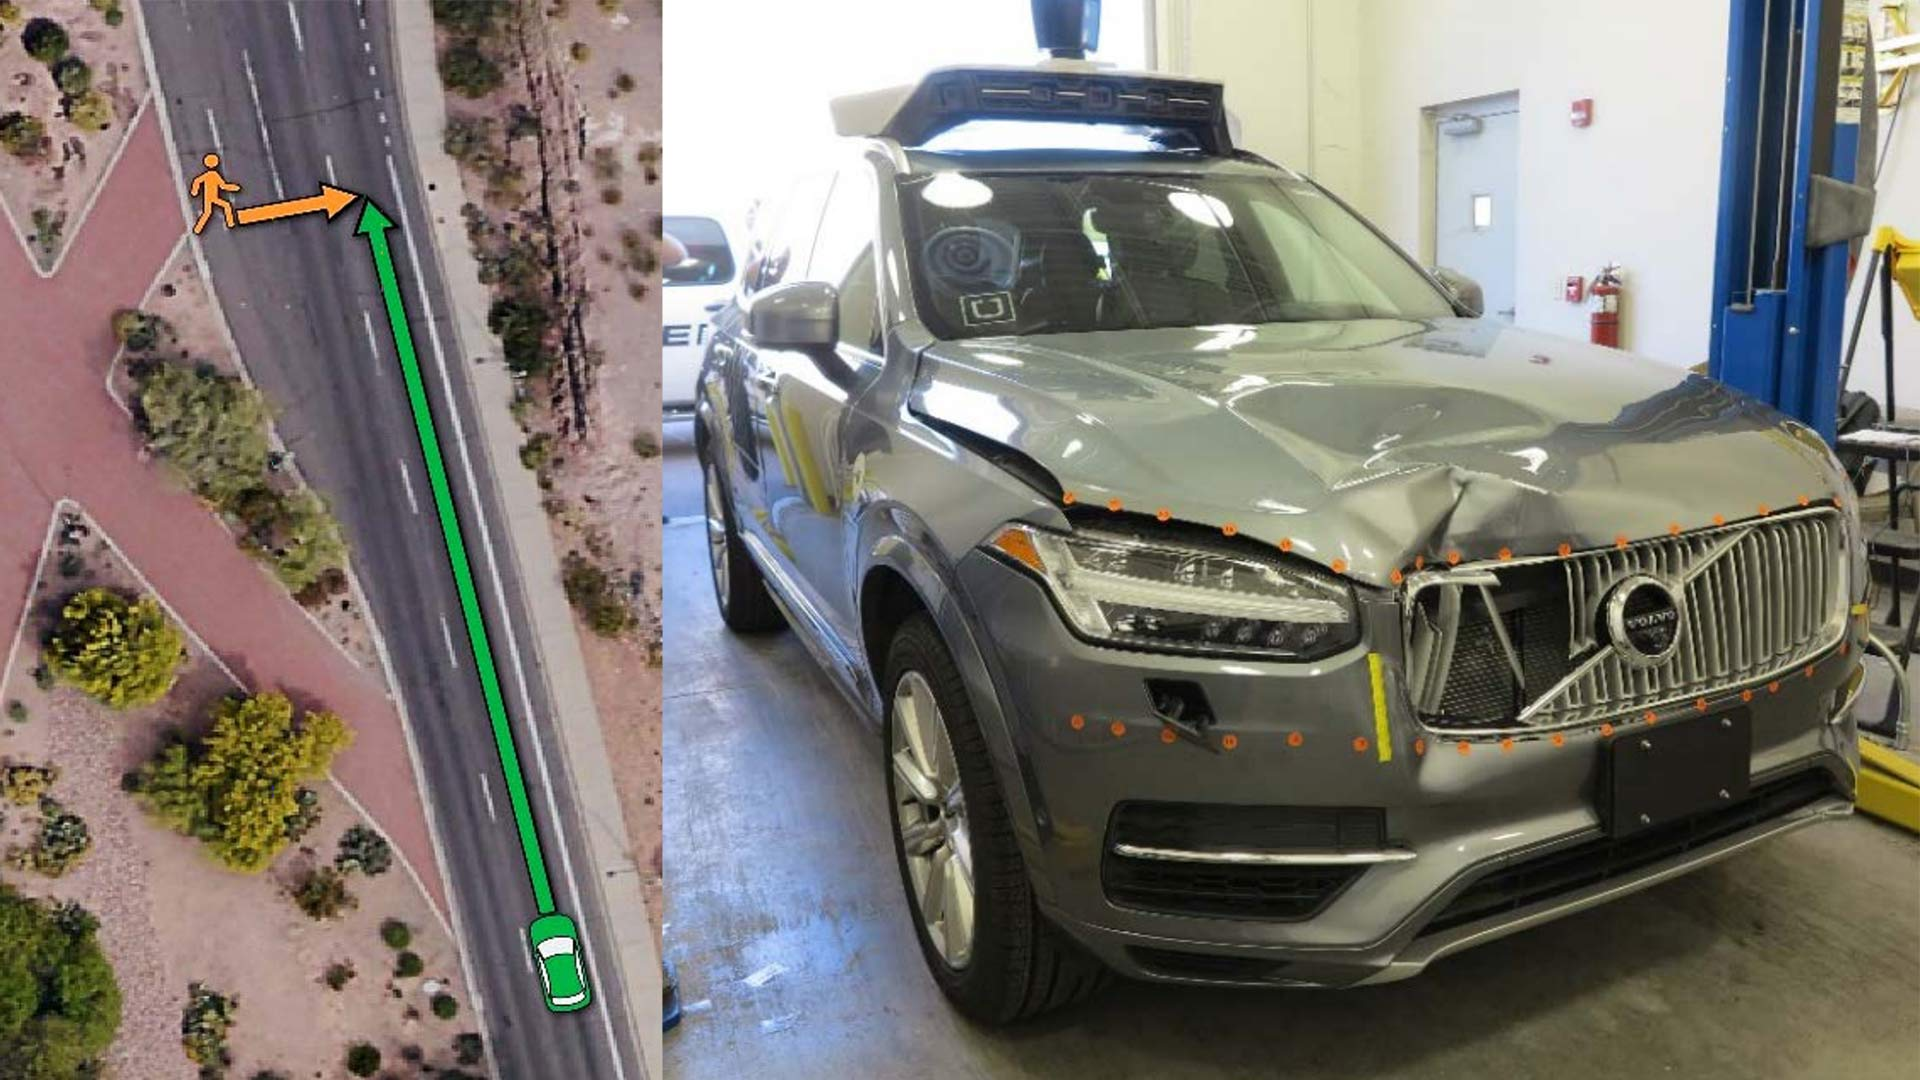 At left, an illustration of the path of a pedestrian and an Uber self-driving vehicle, at right, which struck and killed the pedestrian in March, 2018 in Tempe.